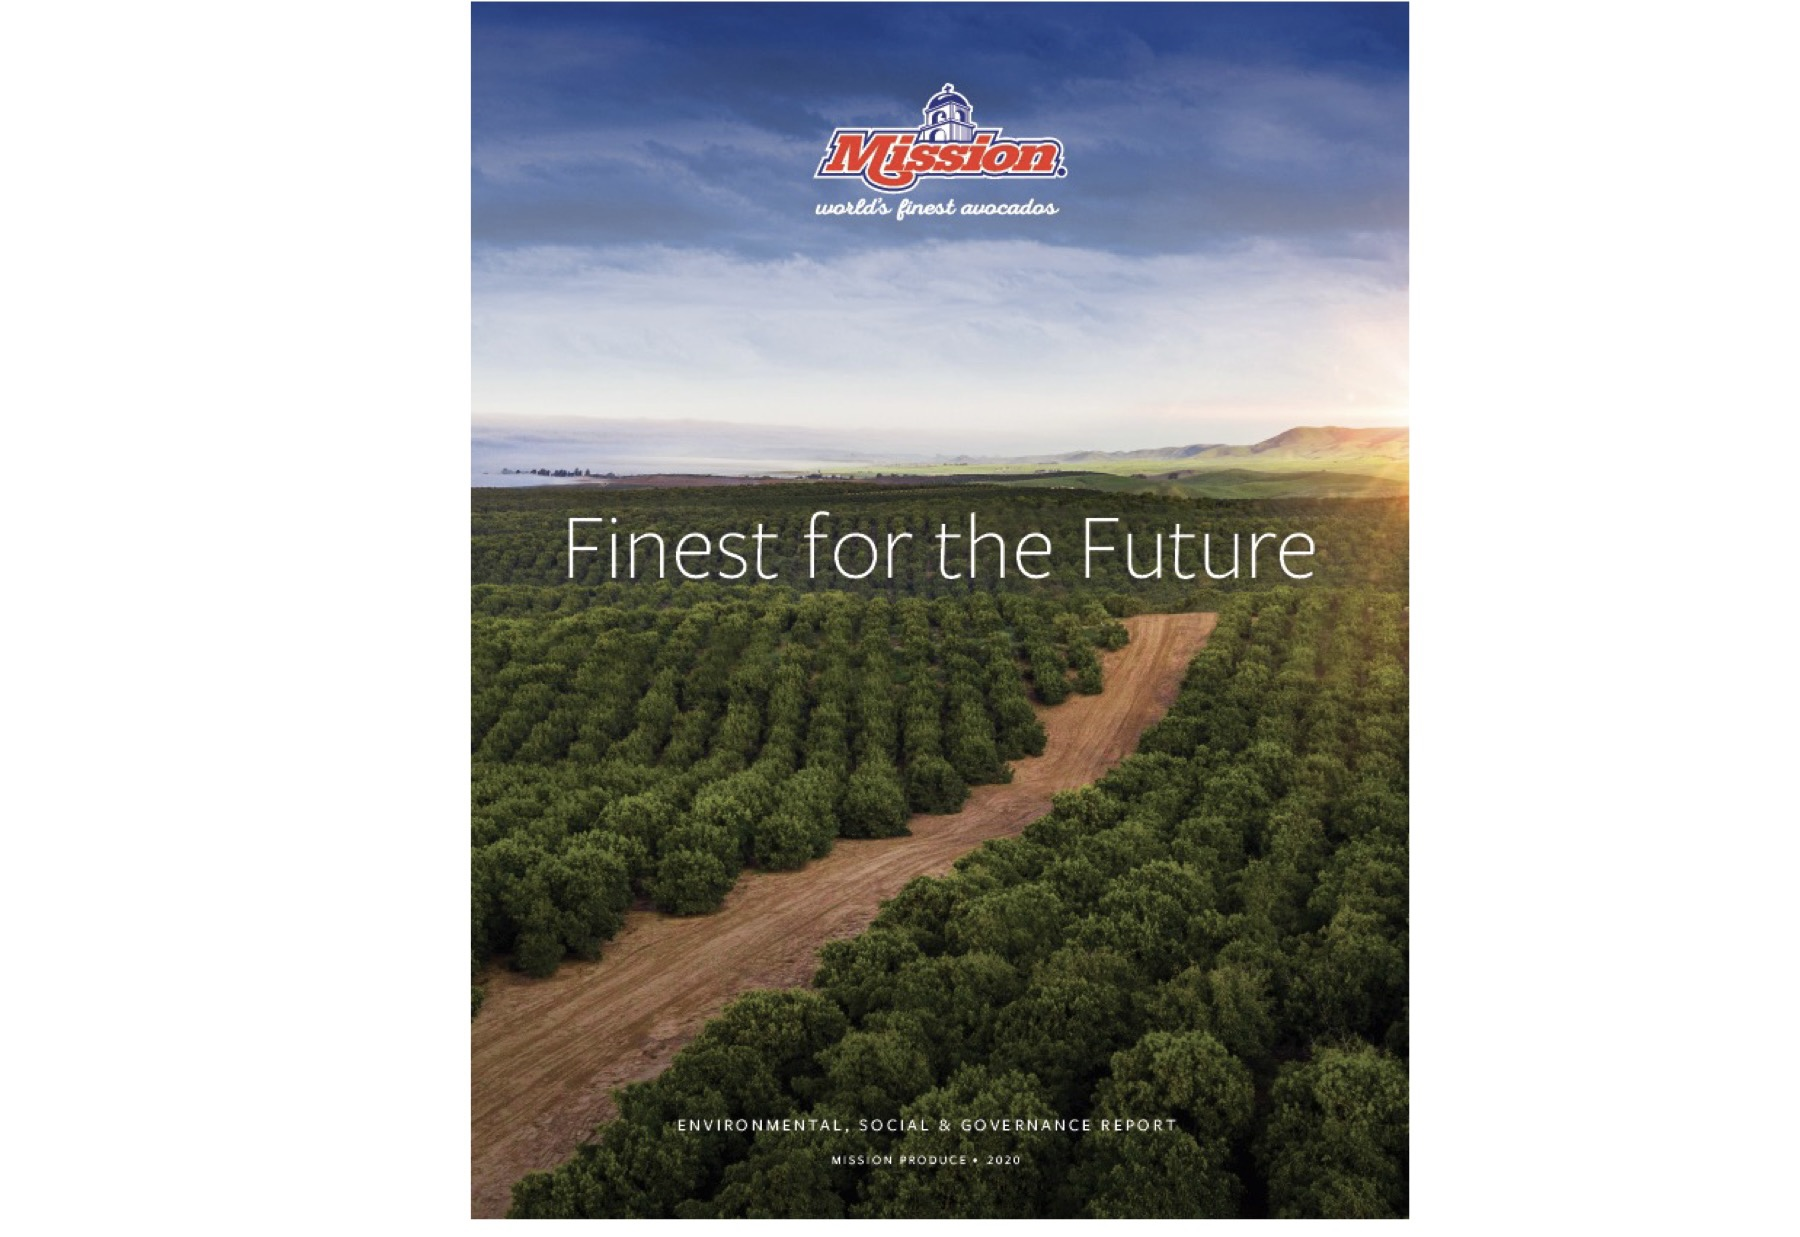 Mission Produce report highlights commitment to sustainable farming and waste reduction